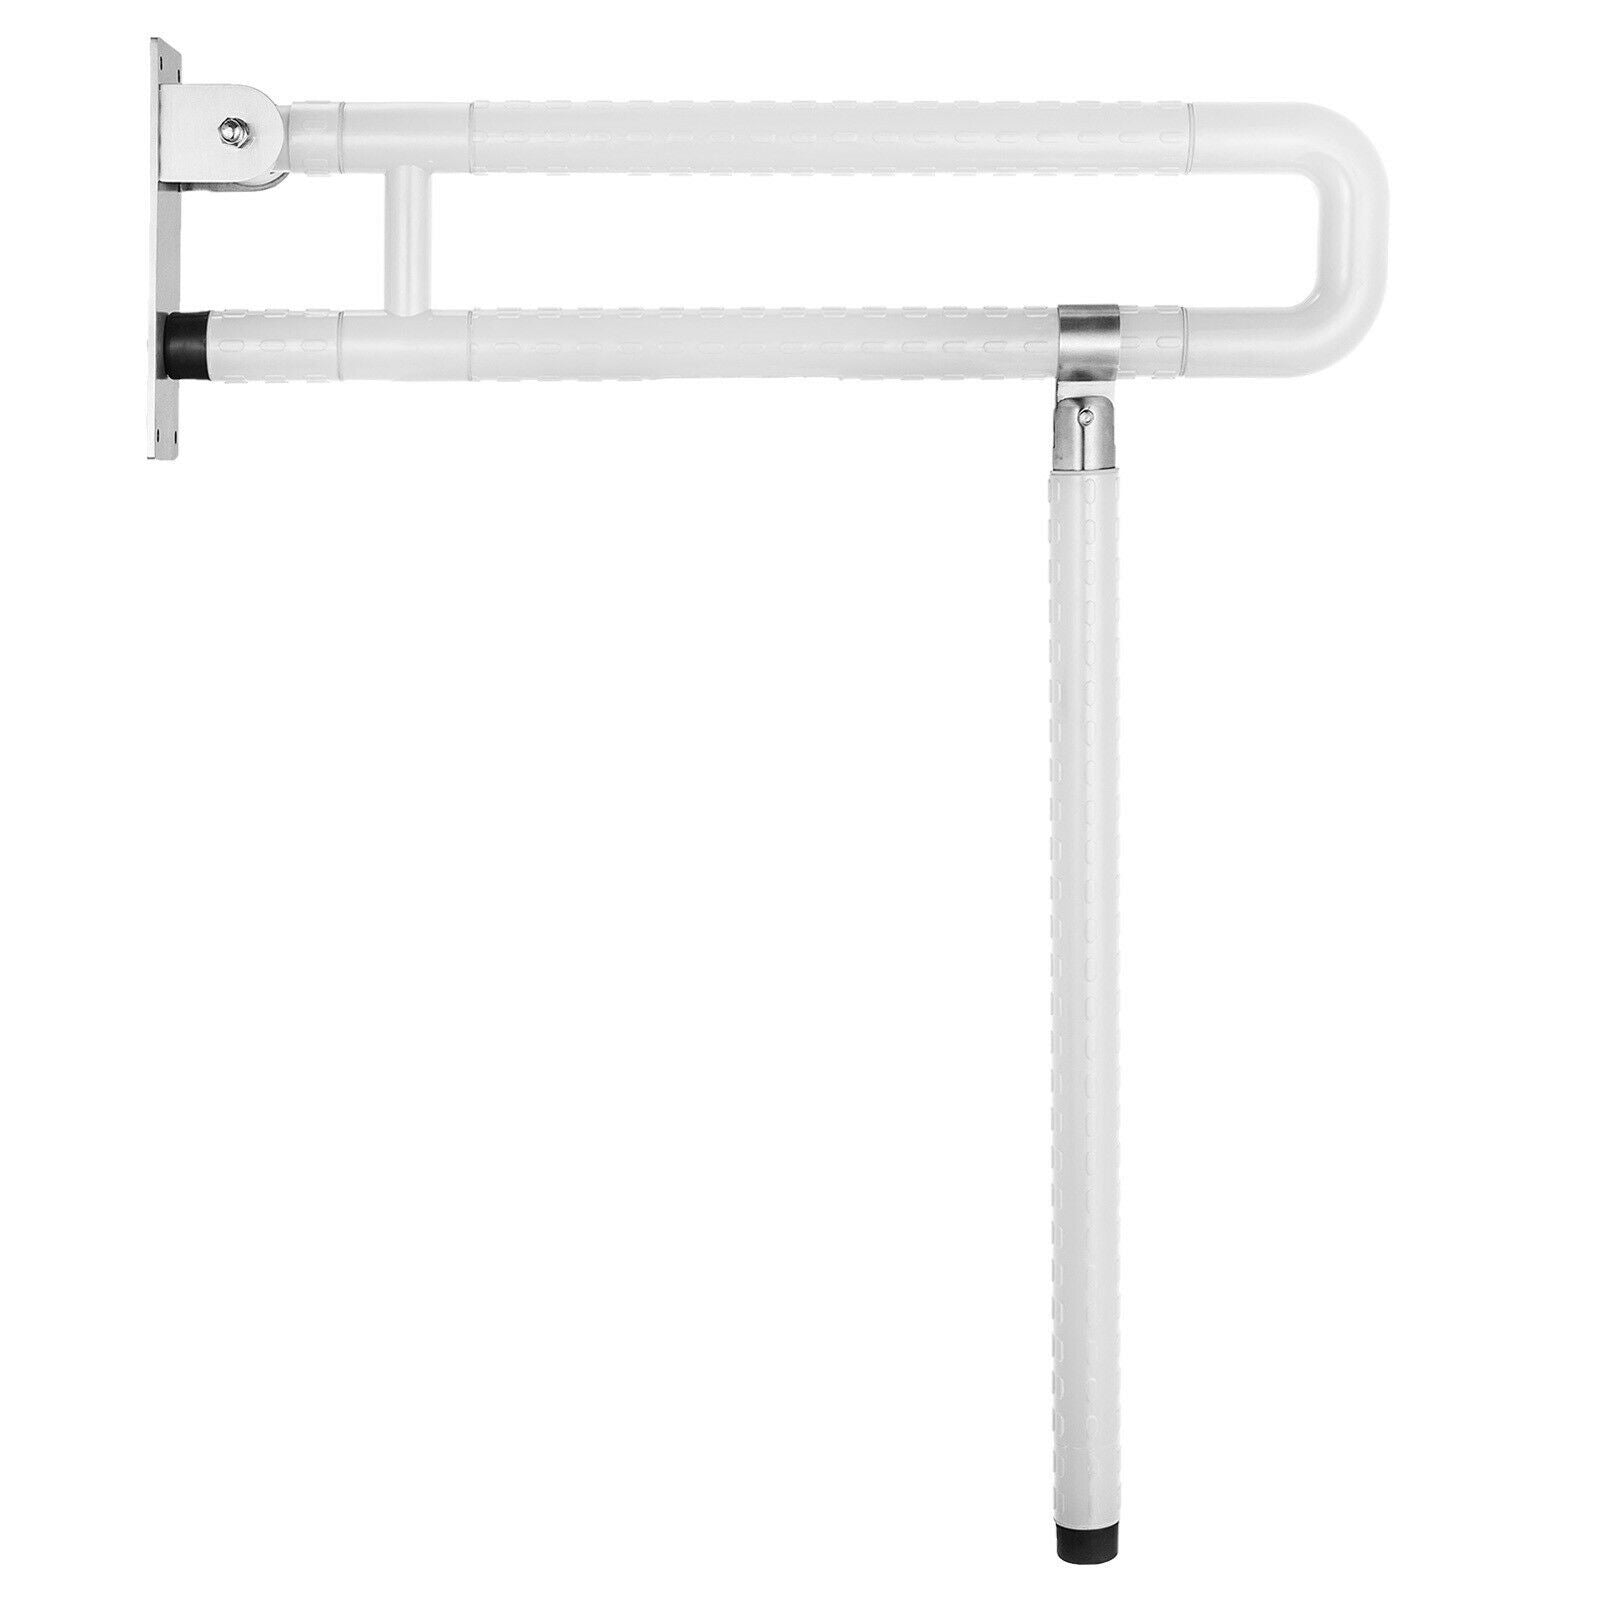 Barra De Apoyo Para Inodoro Antideslizante Bathroom Safety Rail Handle Grab Bar